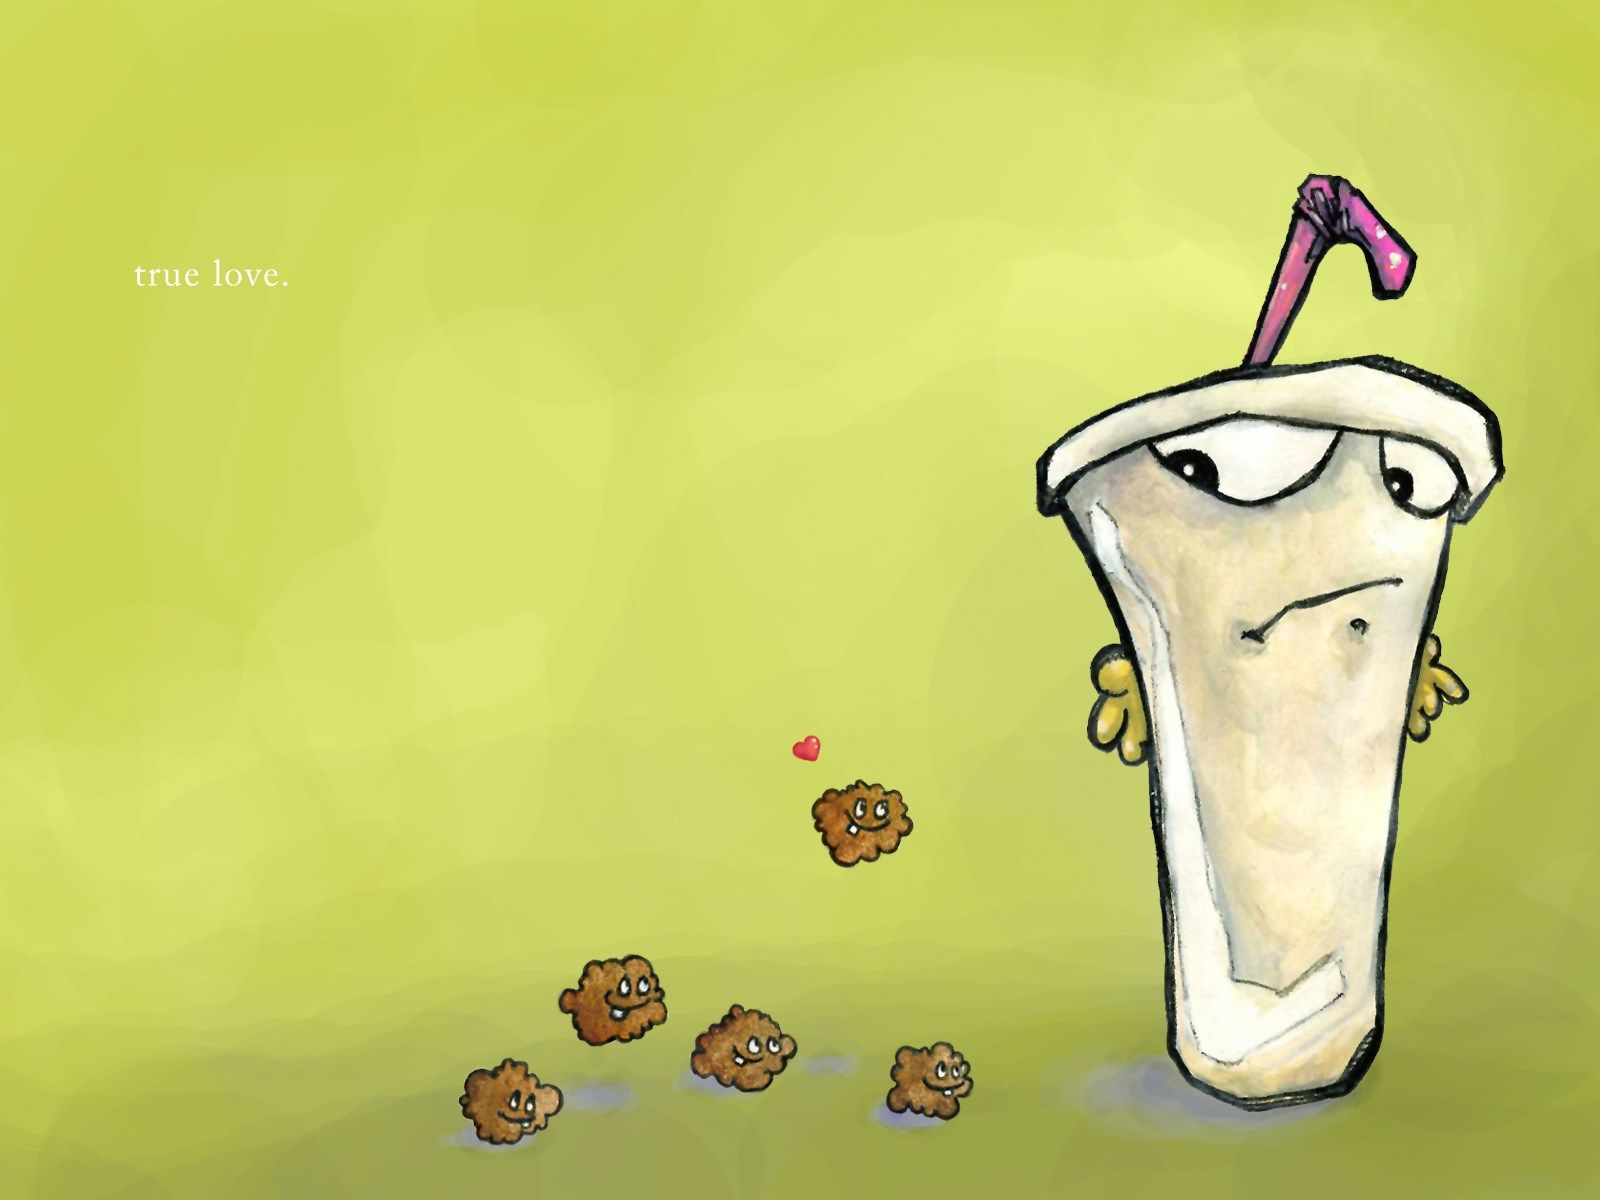 Aqua teen hunger force wallpapers join